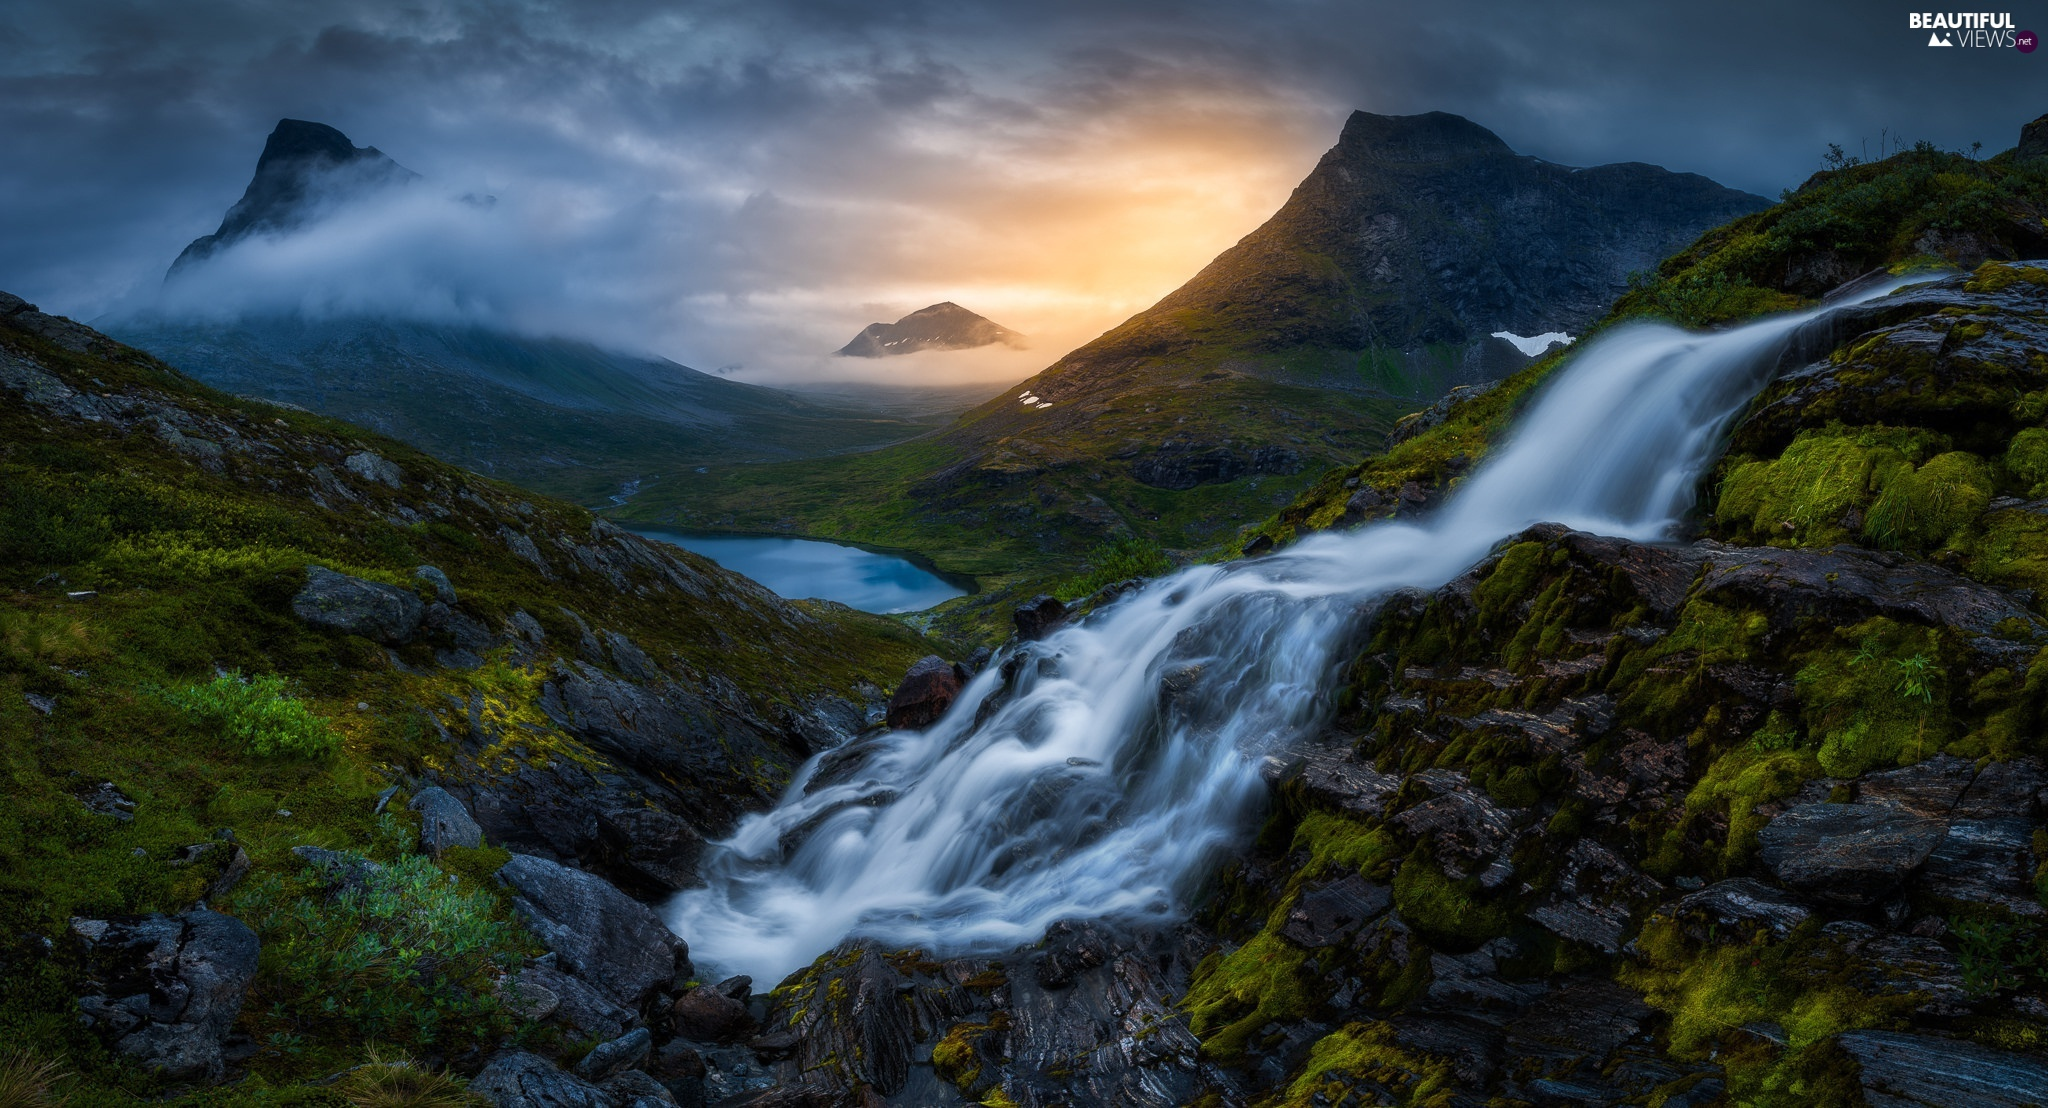 Mountains, waterfall, Sunrise, lake, clouds, Romsdalen Valley, Norway, Fog